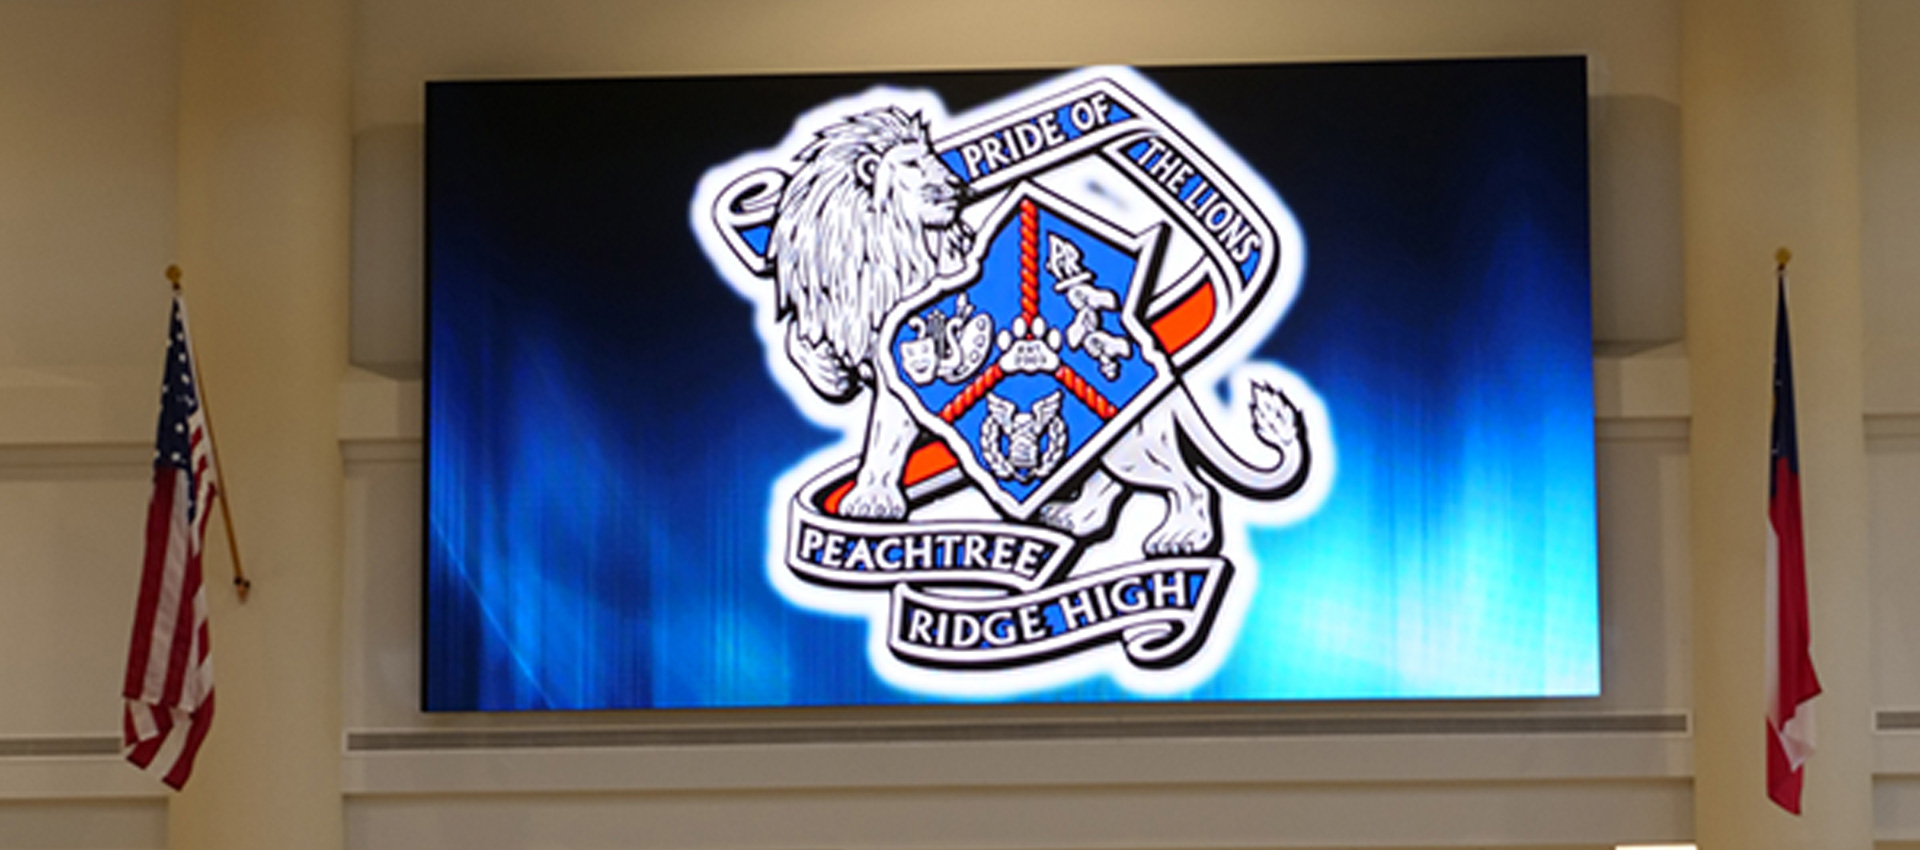 Peachtree Ridge High School